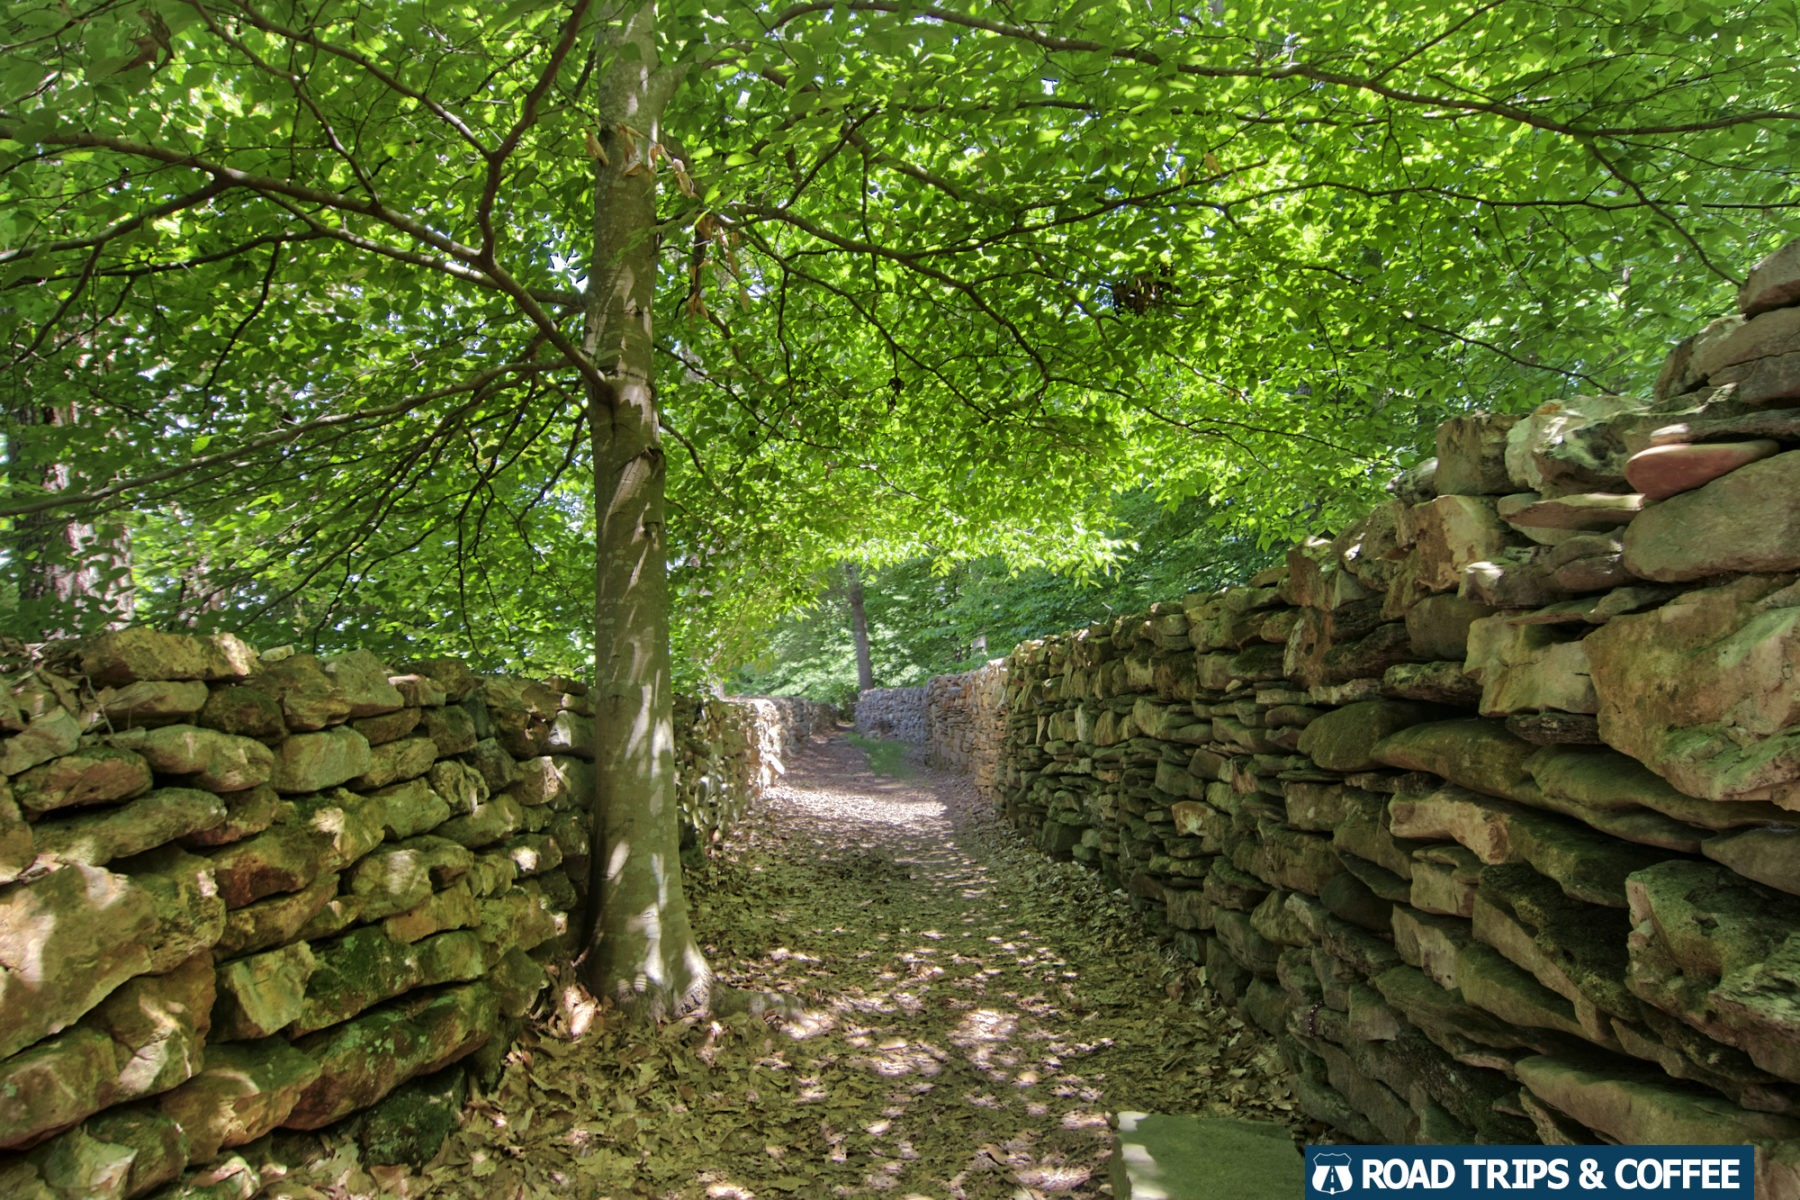 Thousands of stones built into a man-made wall at Tom's Wall, officially known as the Wachapi Commemorative Stone Wall, on the Natchez Trace Parkway in Alabama